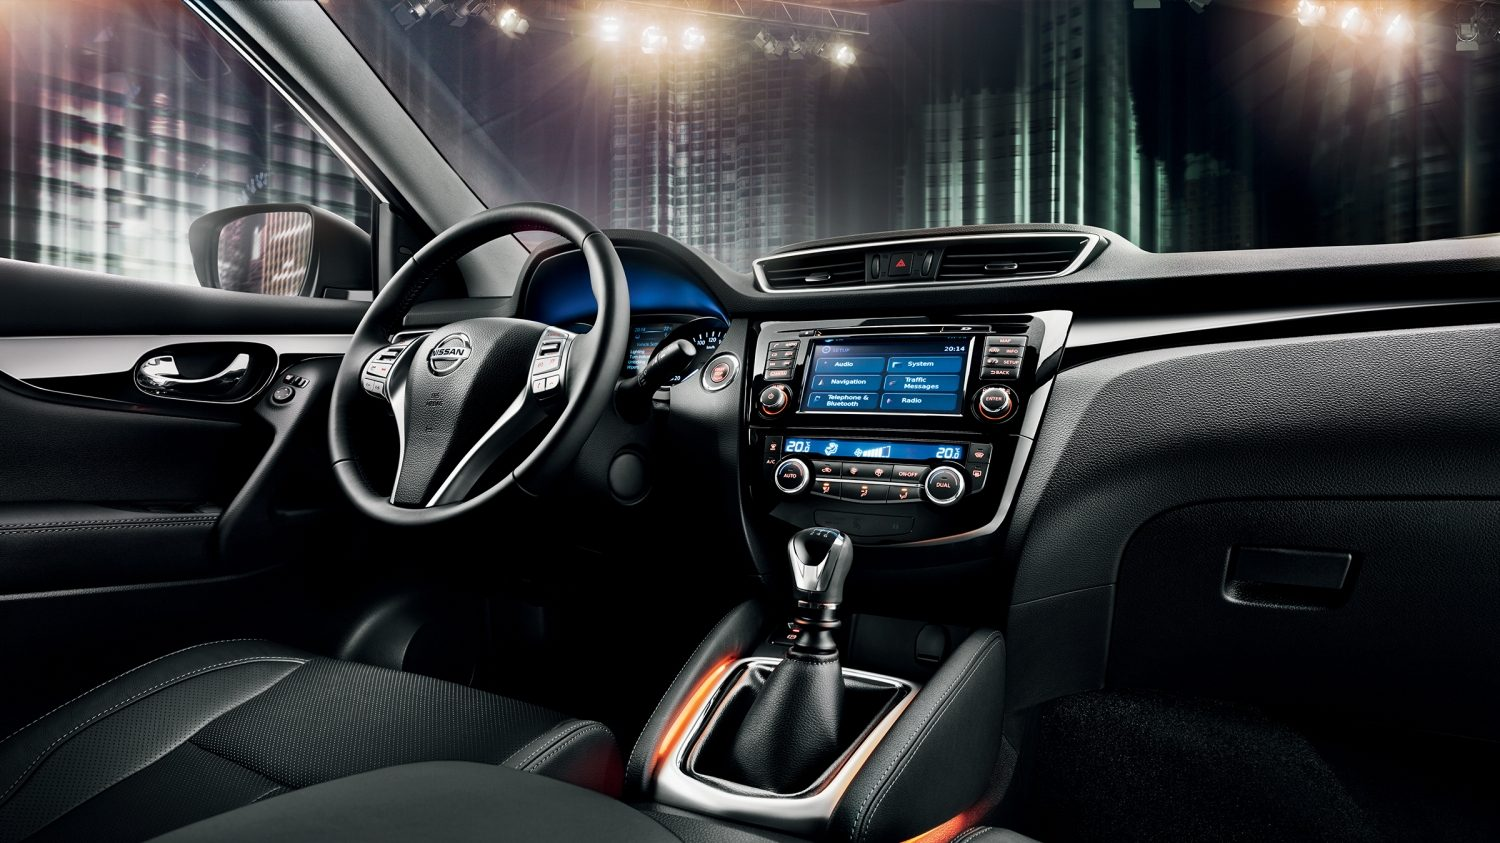 Qashqai Black Edition's interior with bespoke entry guards and limited edition badge.